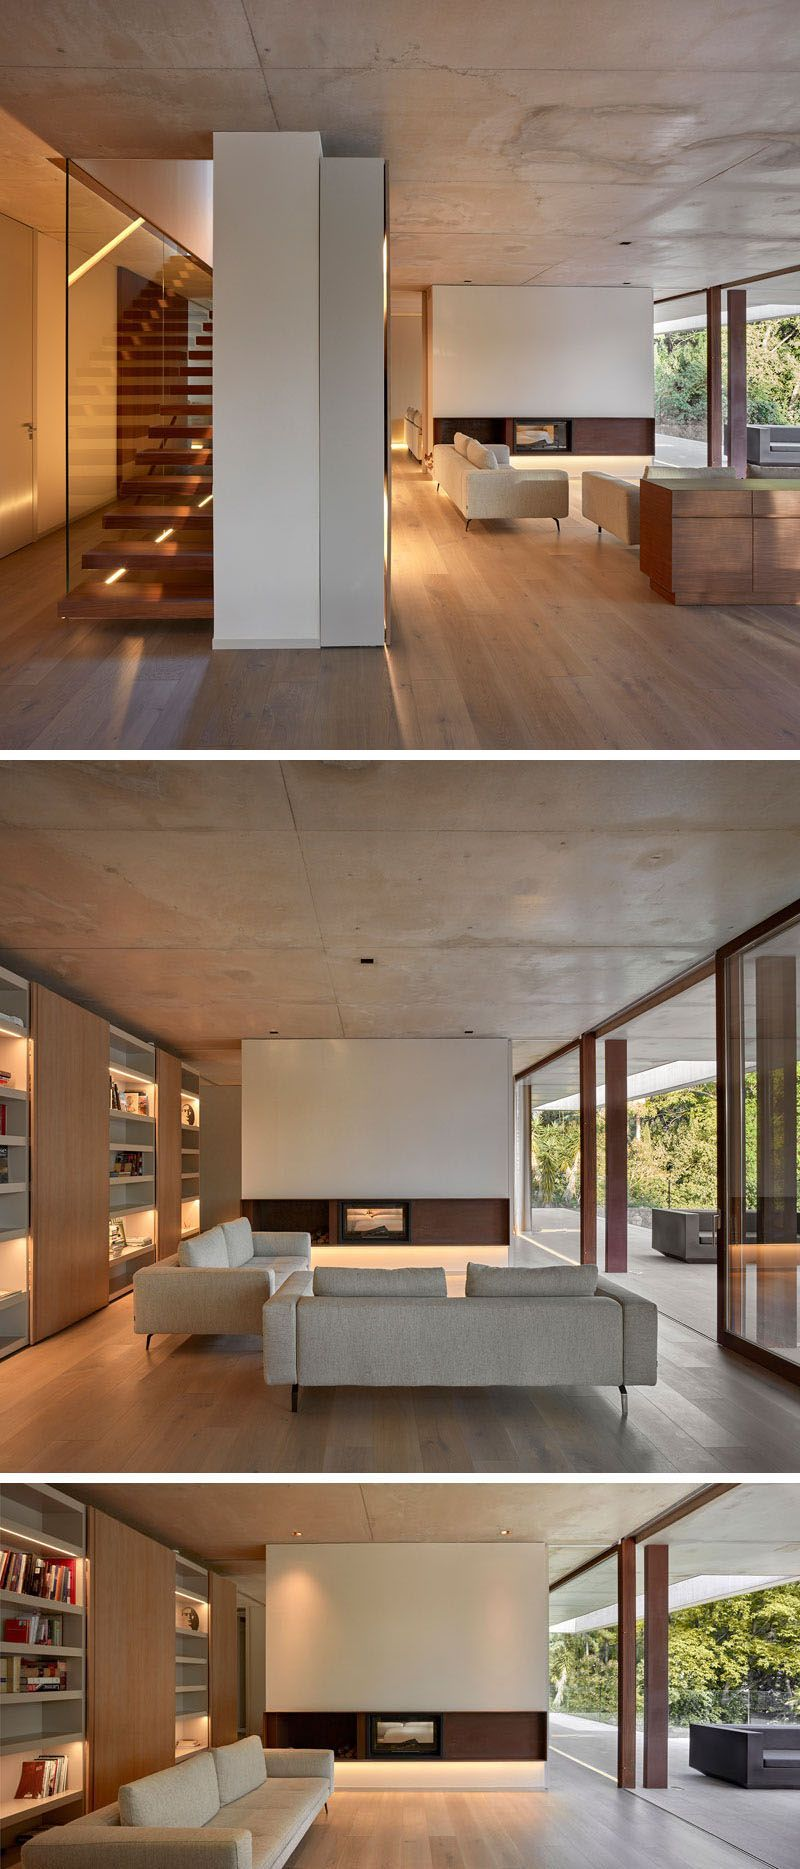 Home In The Pine Forest By Ramon Esteve Minimalist Decor